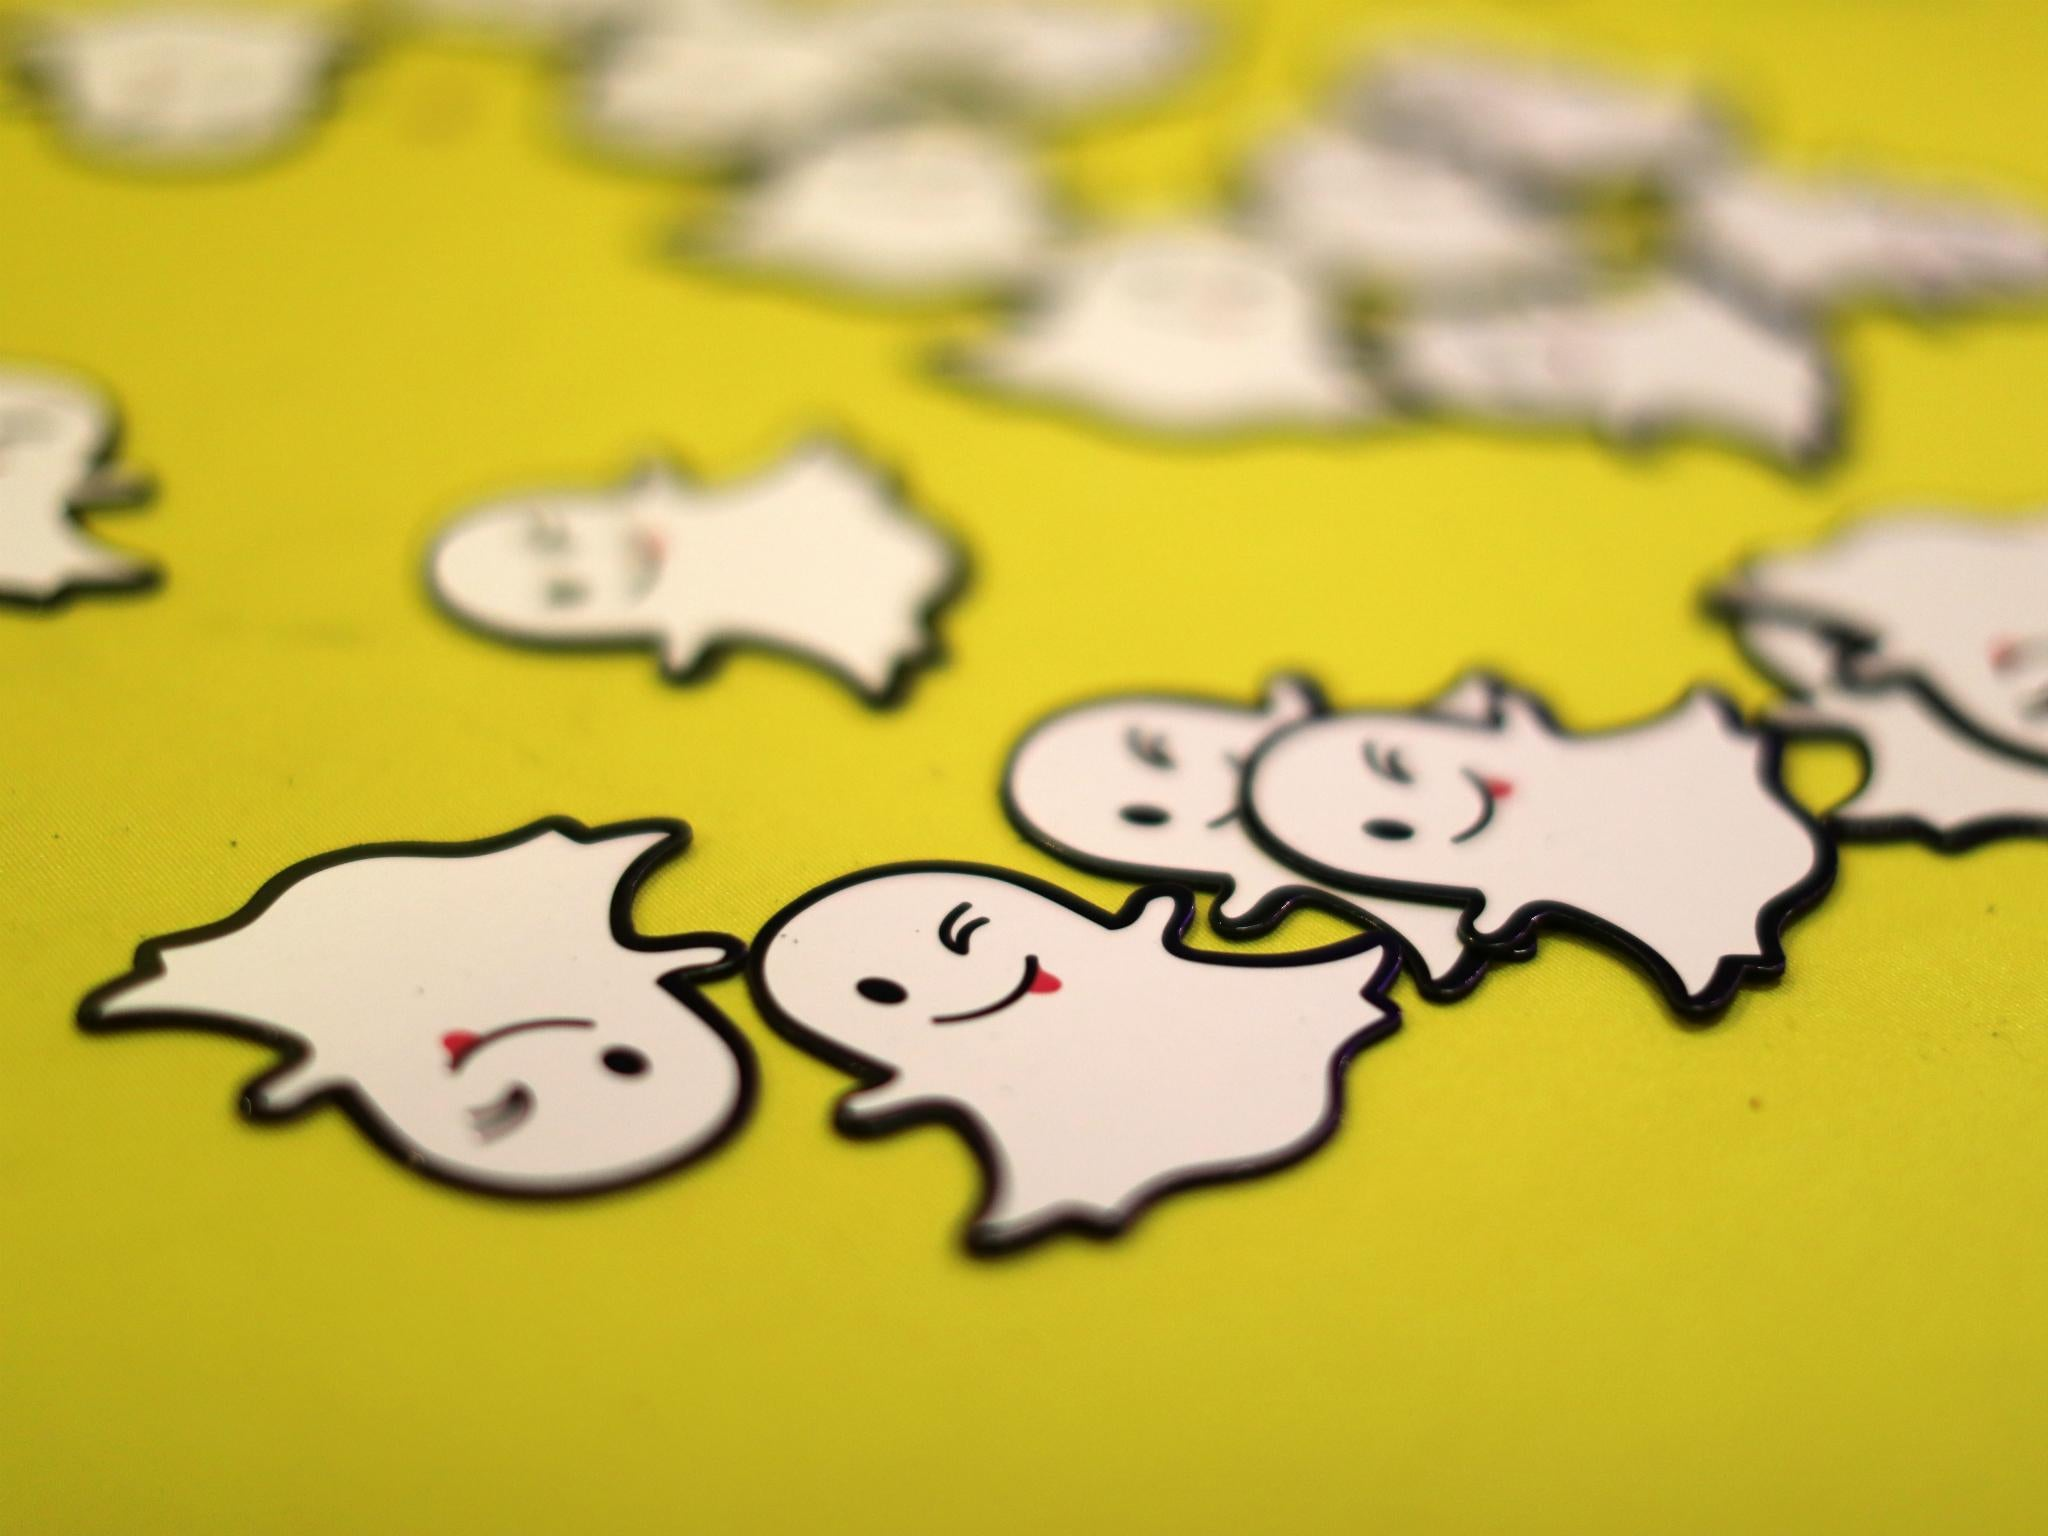 Snapchat Can Identify What Users Are Taking Pictures Of